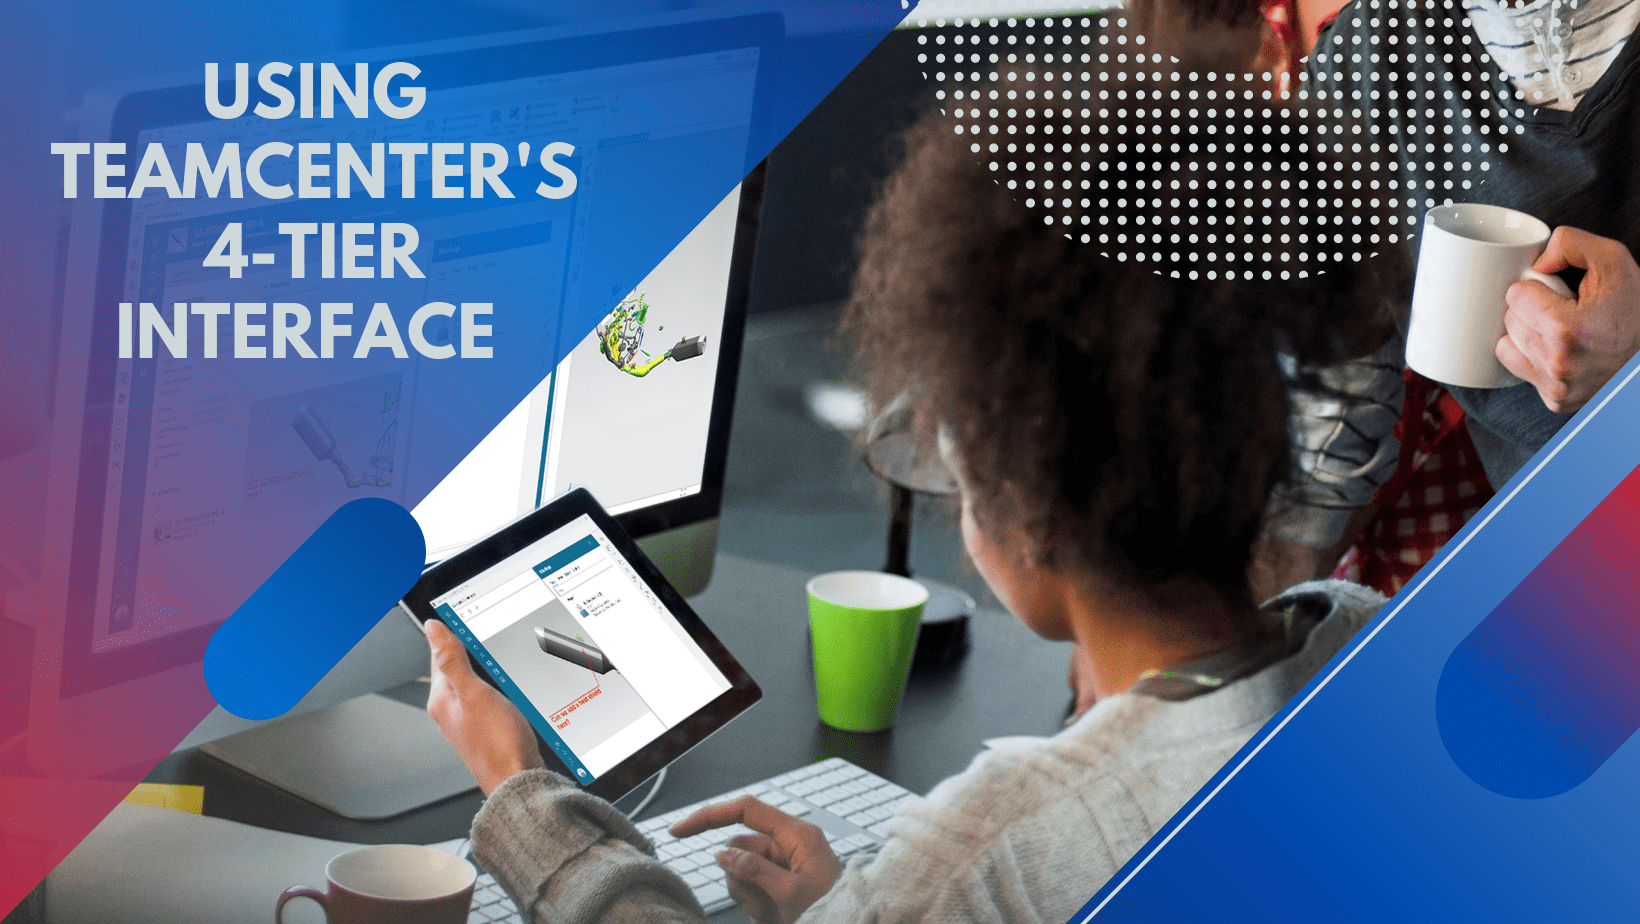 Using Teamcenter's 4-Tier Interface